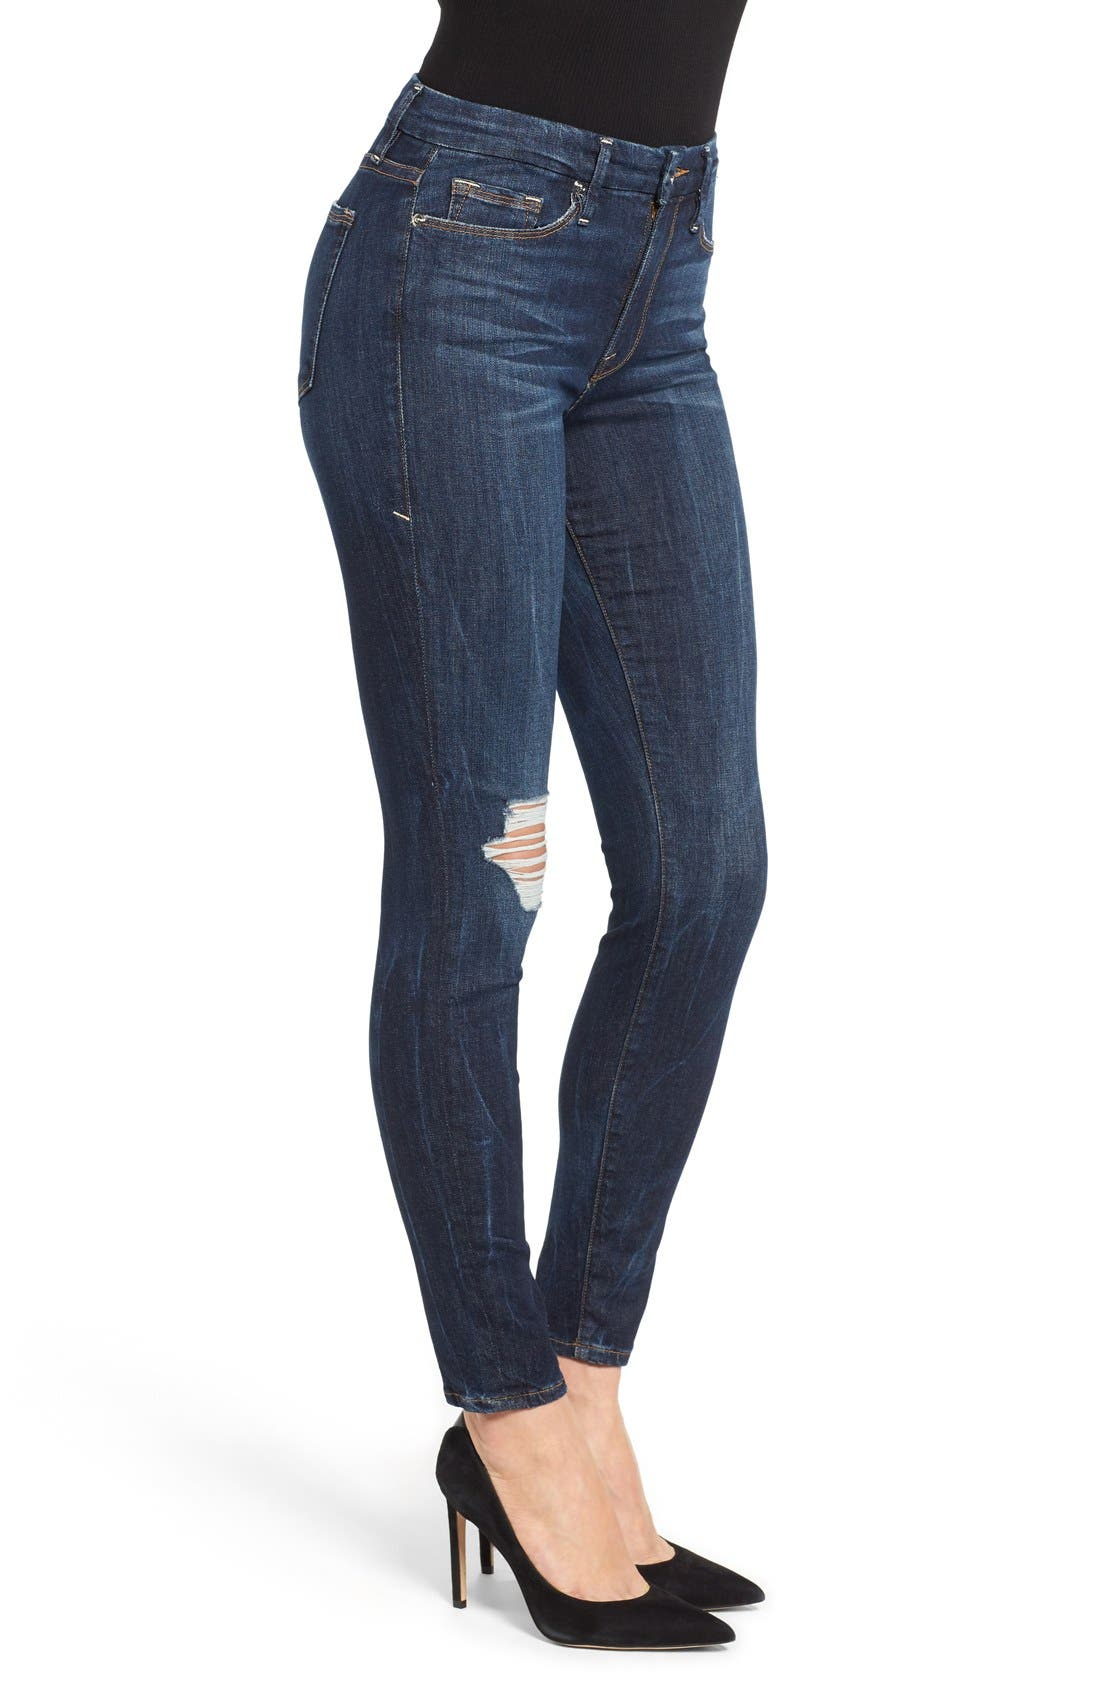 Alternate Image 3  - Good American Good Legs Ripped Skinny Jeans (Blue 002)